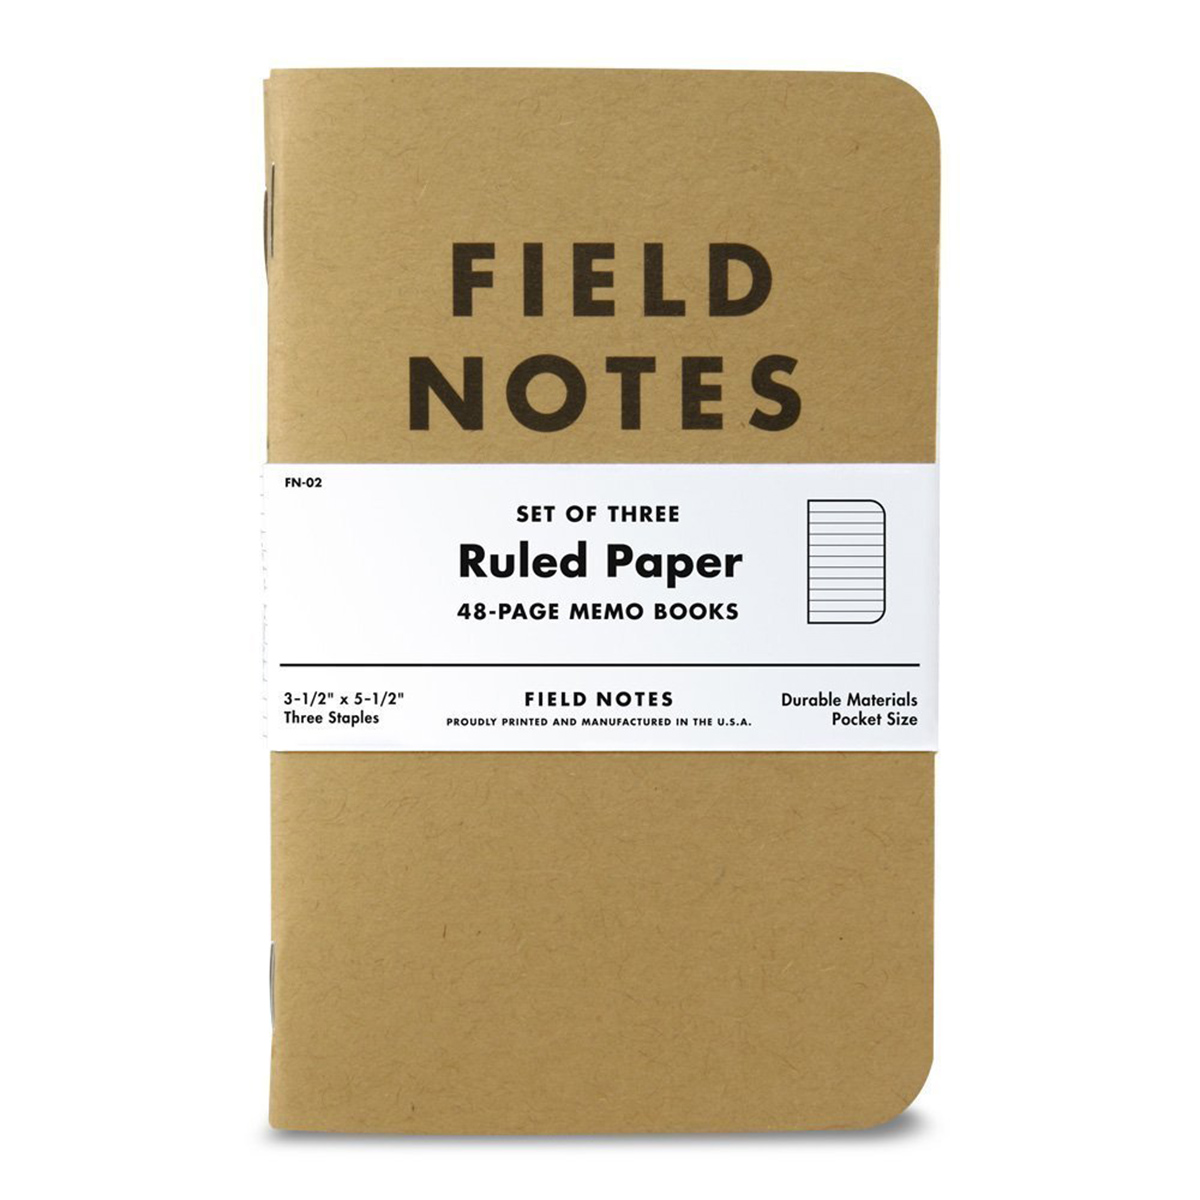 (Field Notes)